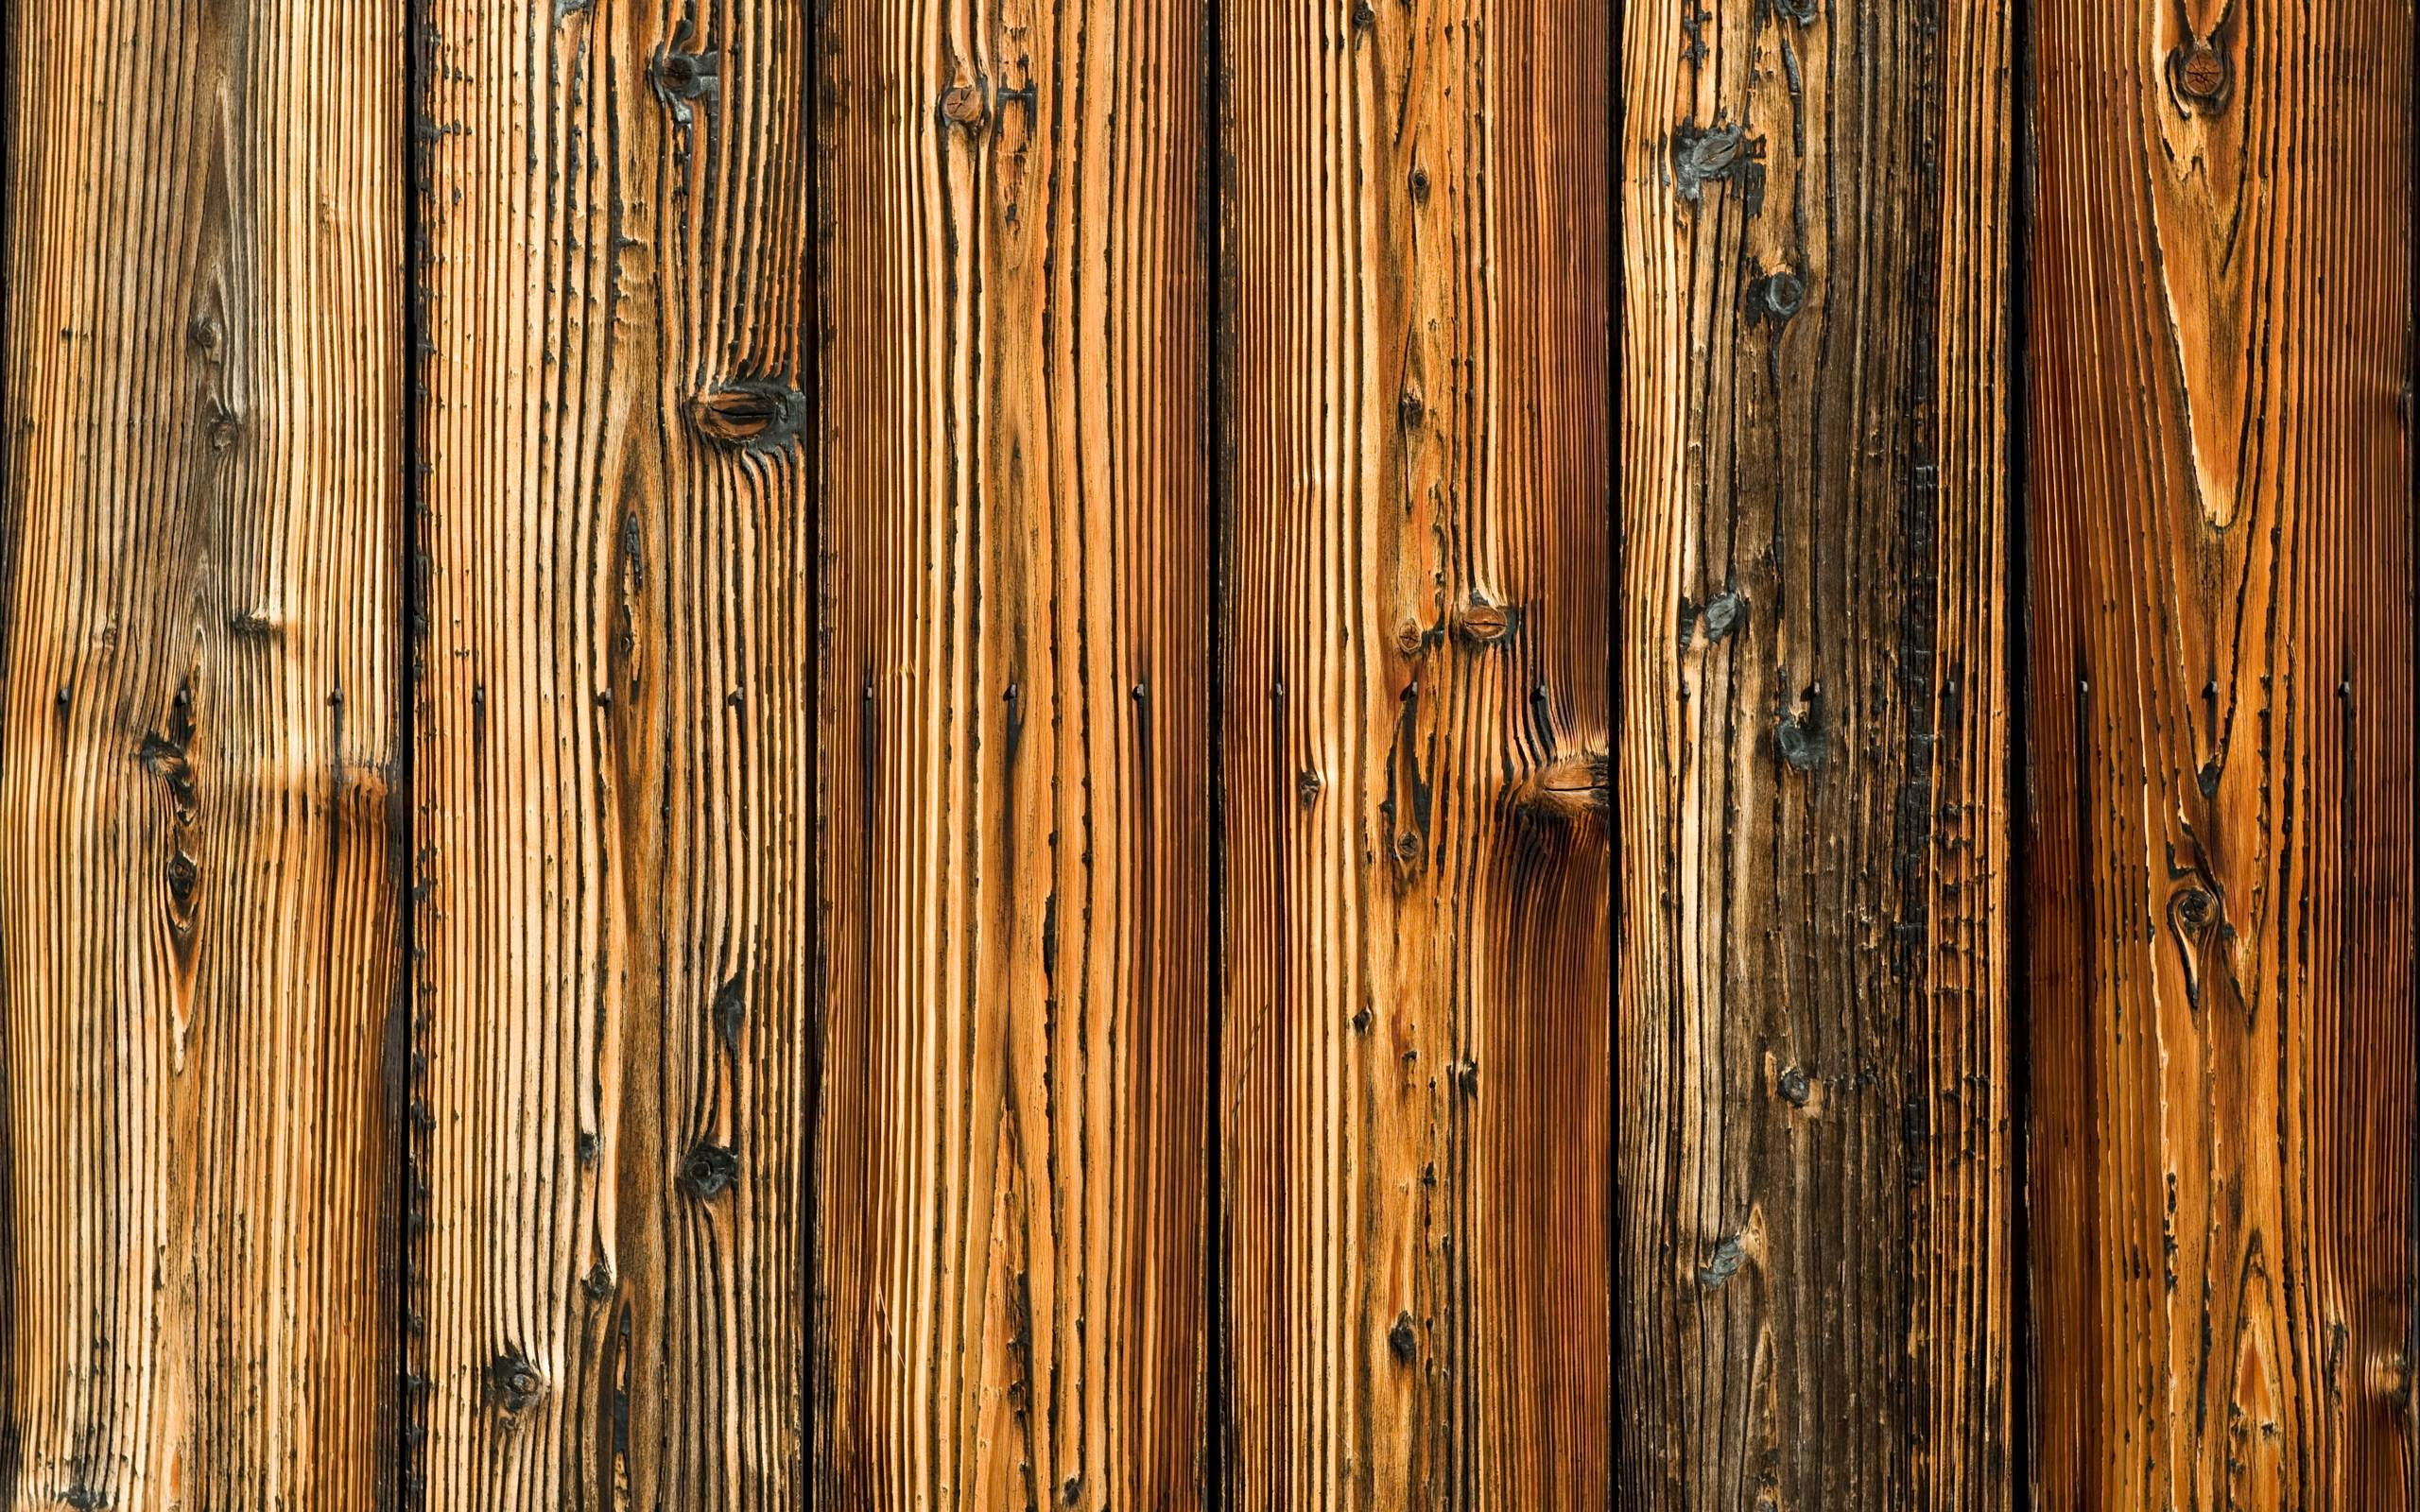 jeffrey friedls blog burning relief the outside walls of - Wood Grain Wall Paper